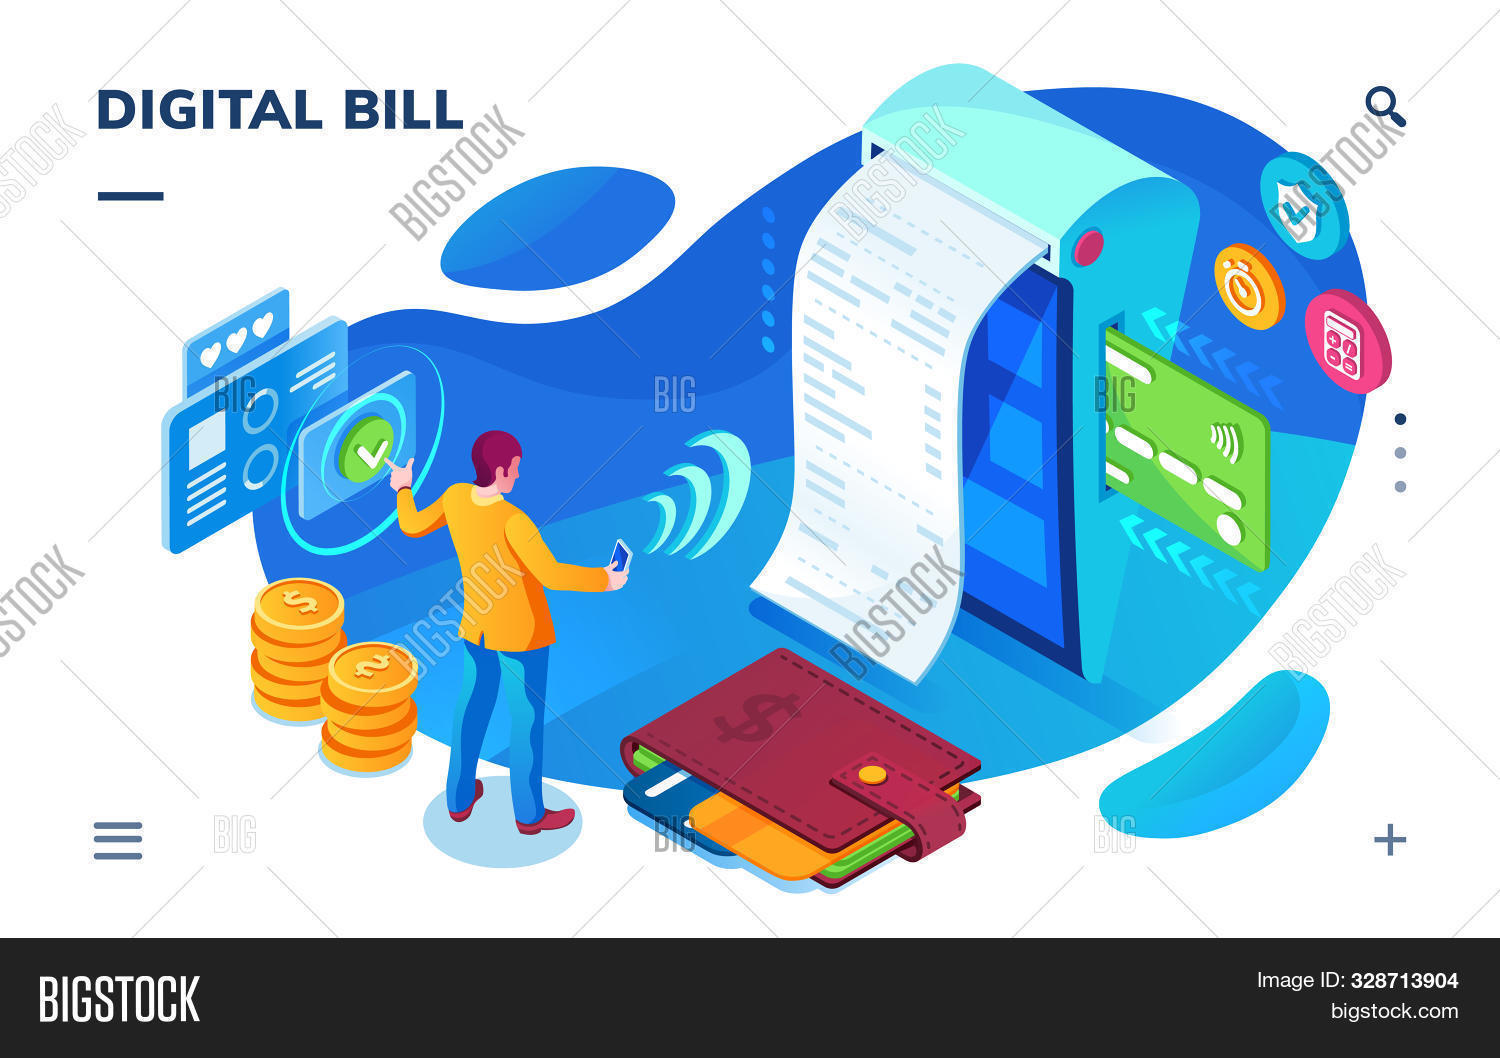 account,accounting,app,application,bank,banking,bill,billing,budget,business,card,cash,check,commerce,concept,credit,digital,e,e-business,e-commerce,ecommerce,electronic,finance,financial,illustration,internet,invoice,isometric,mobile,money,online,pay,paying,payment,phone,receipt,screen,secure,send,service,shopping,smart,smartphone,tax,technology,transaction,transfer,wallet